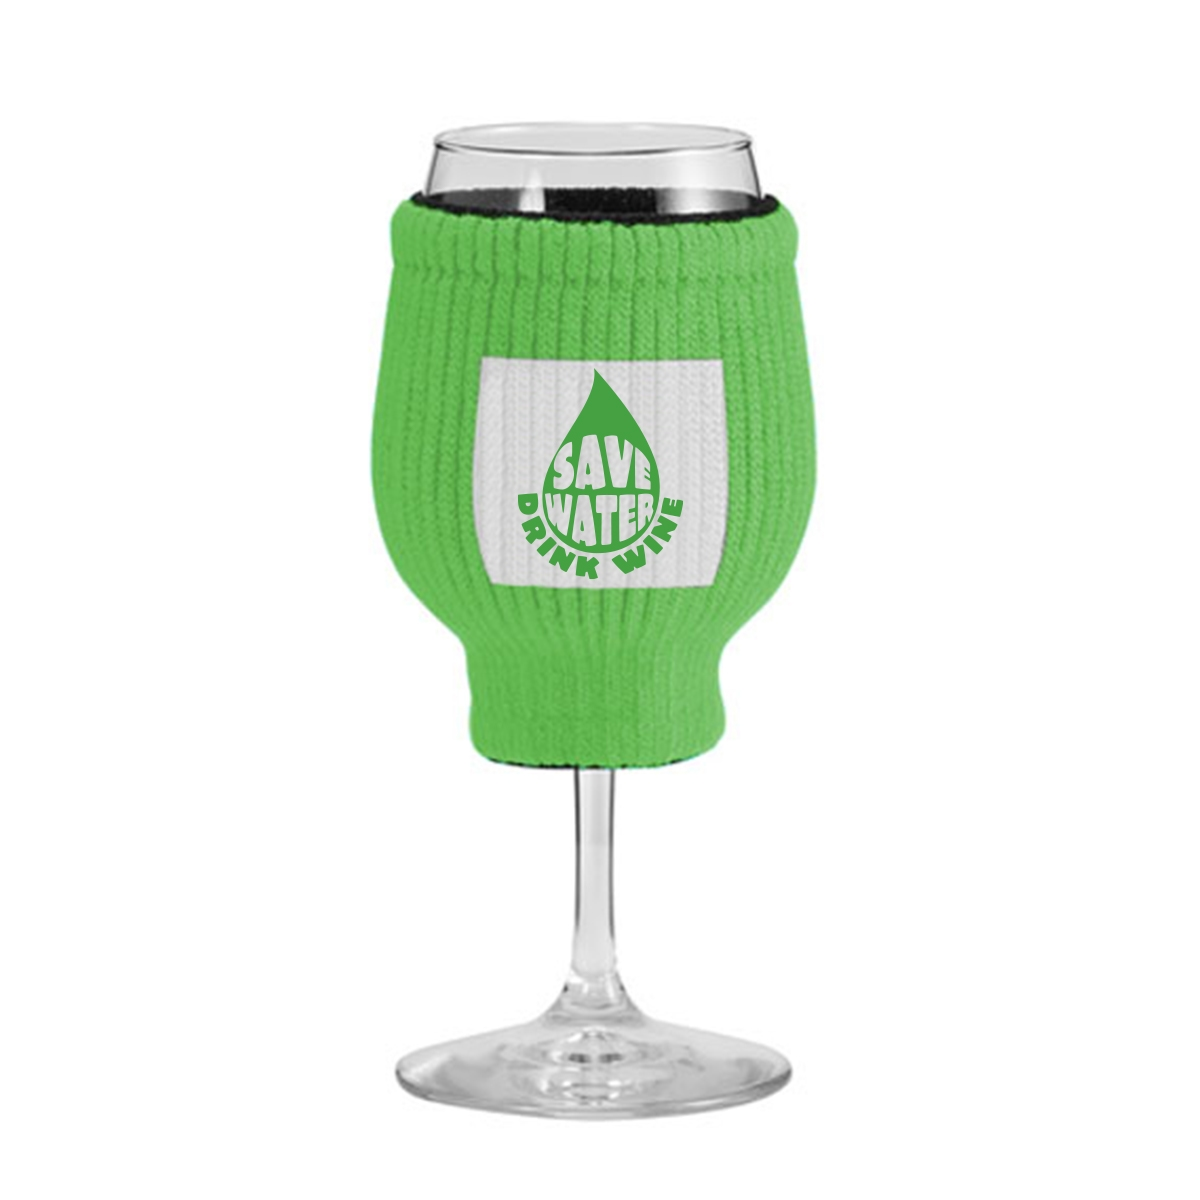 Knit wine glass sleeve with wine saying